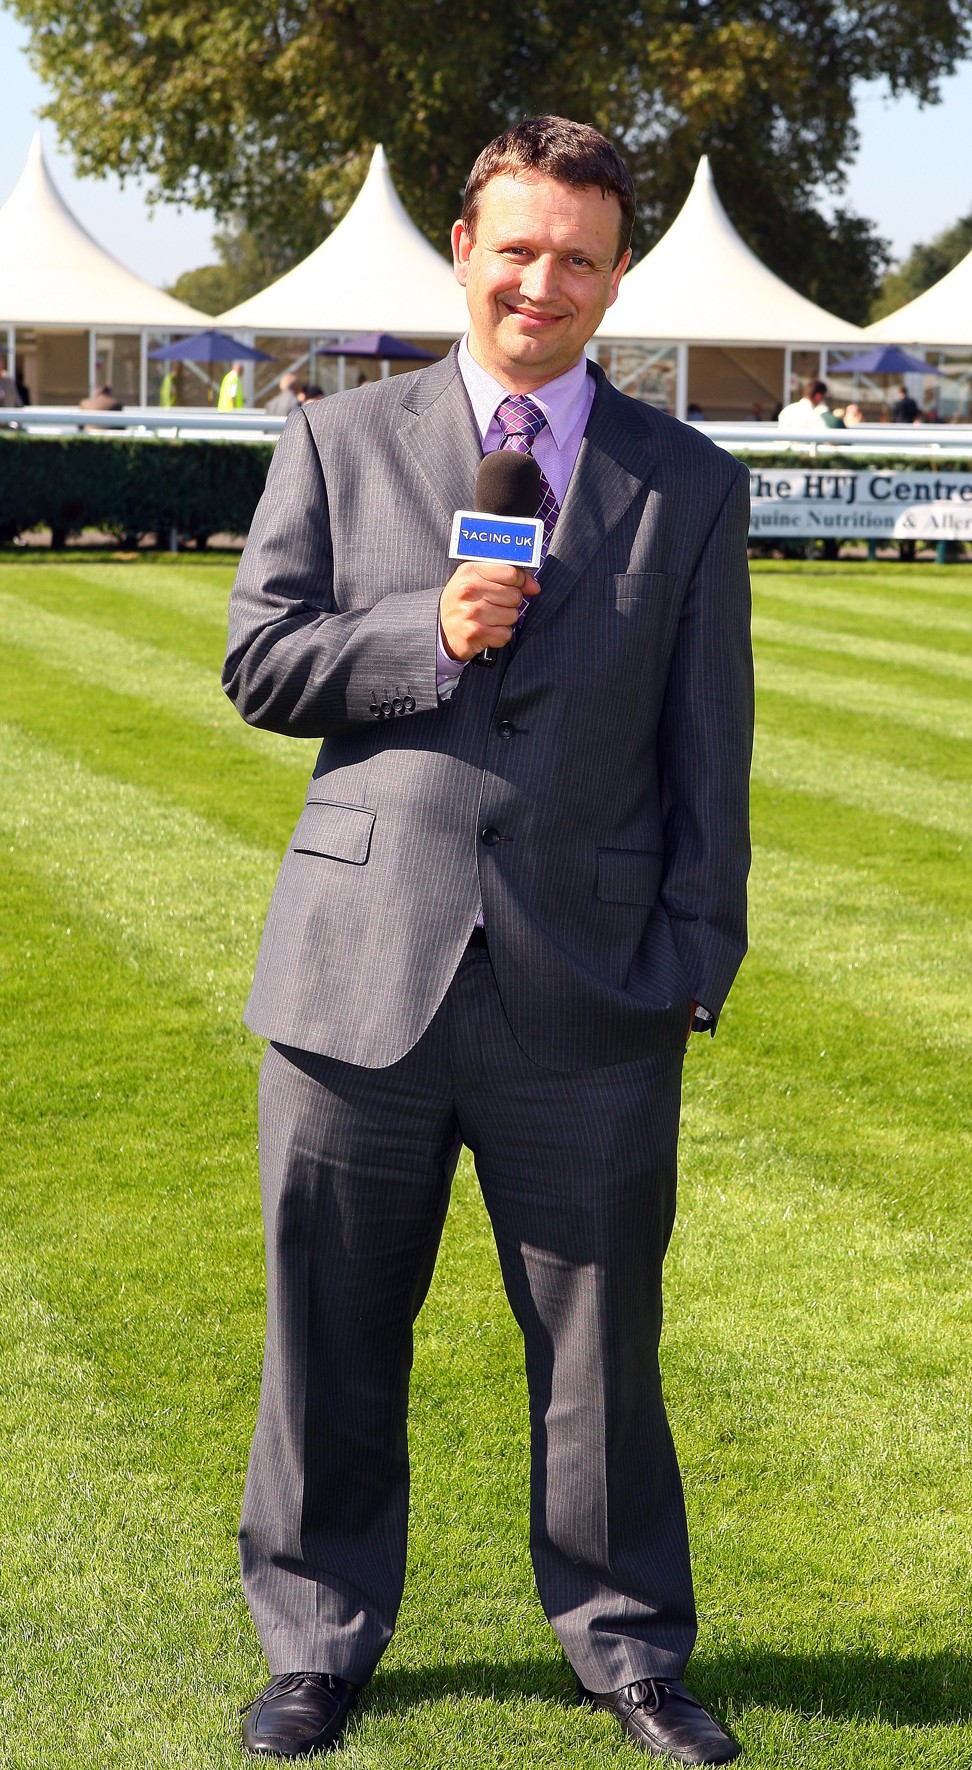 Racecaller Richard Hoiles. Photo: Handout